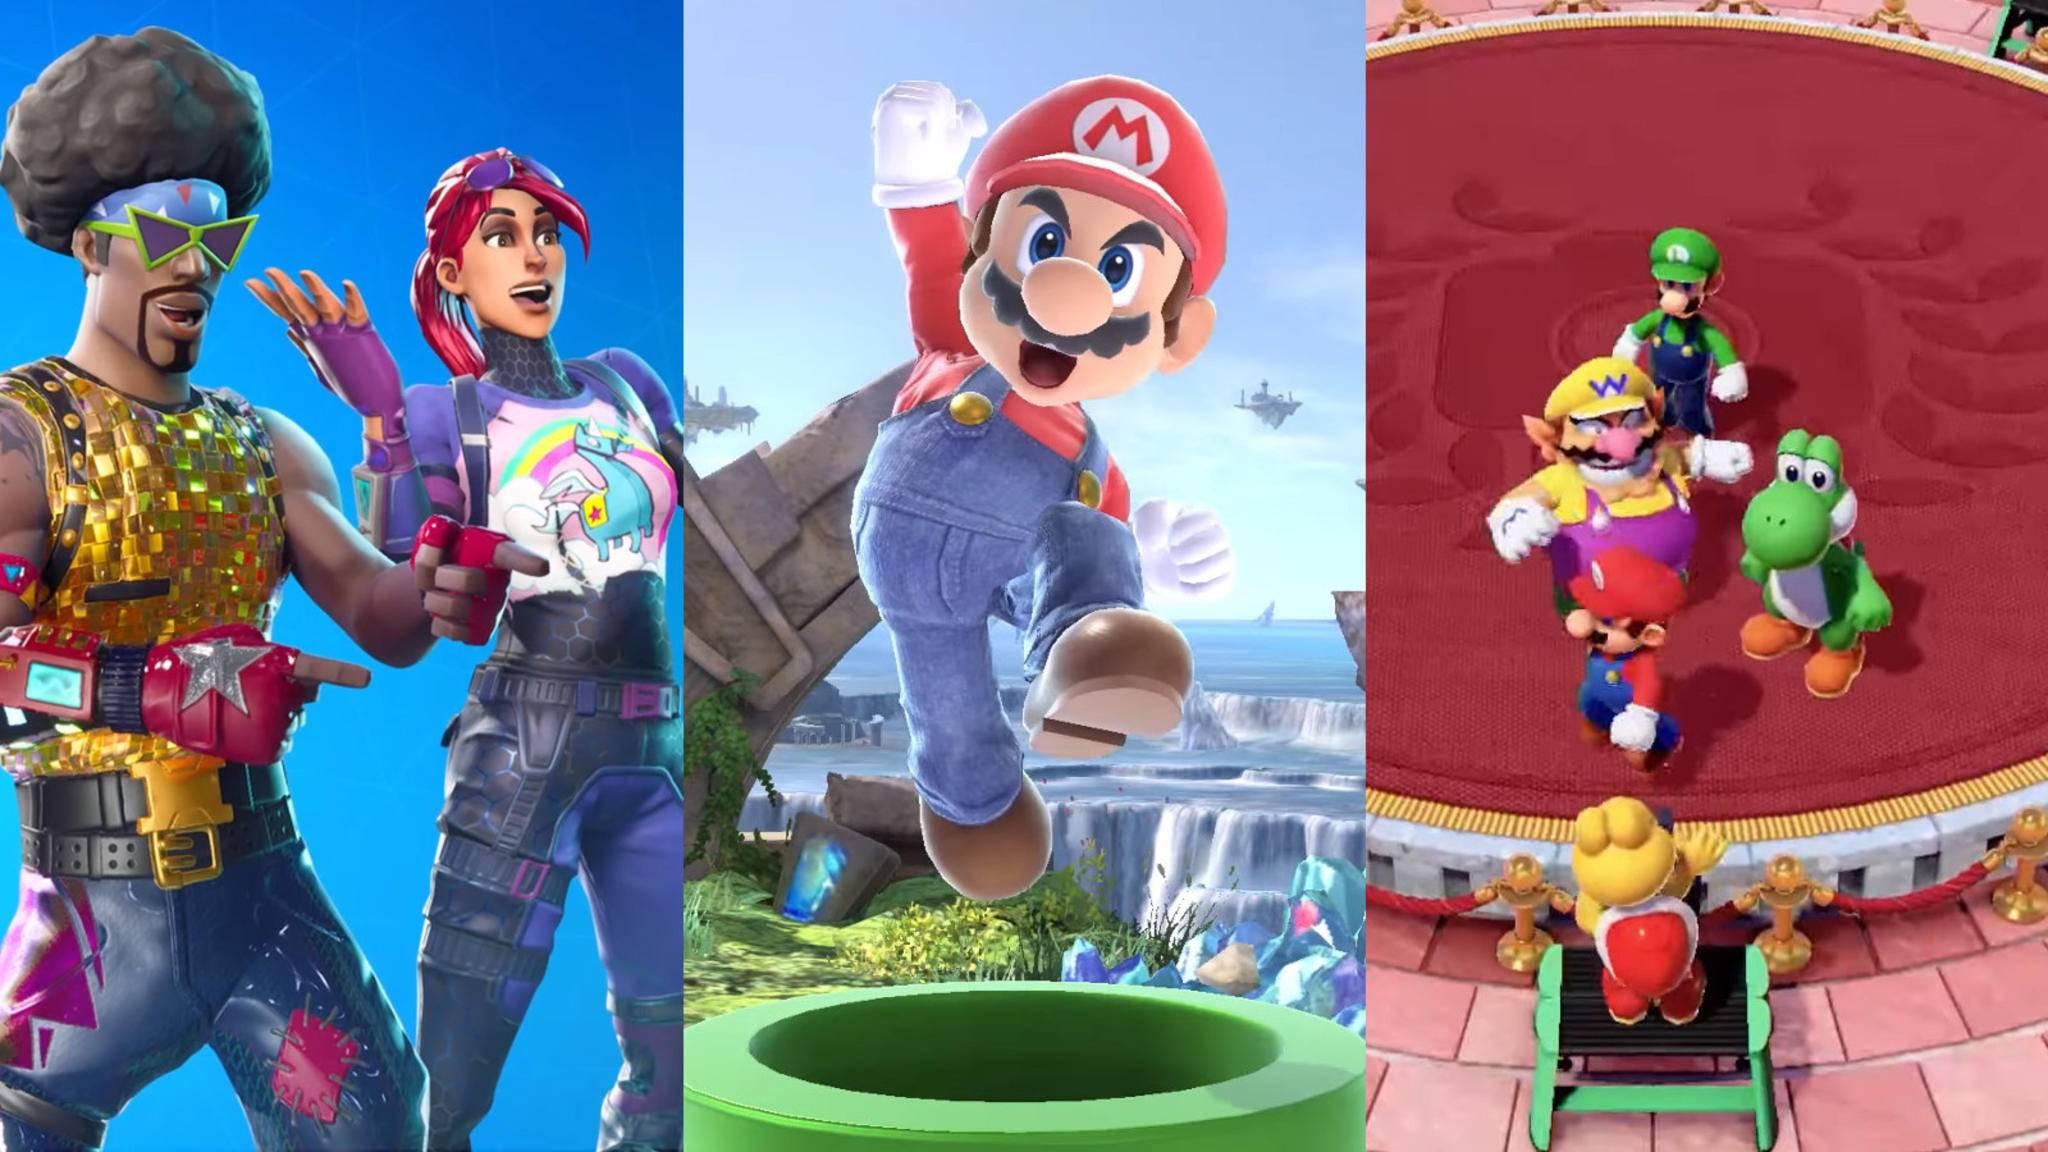 e3 2018 nintendo direct die wichtigsten neuen games trailer. Black Bedroom Furniture Sets. Home Design Ideas